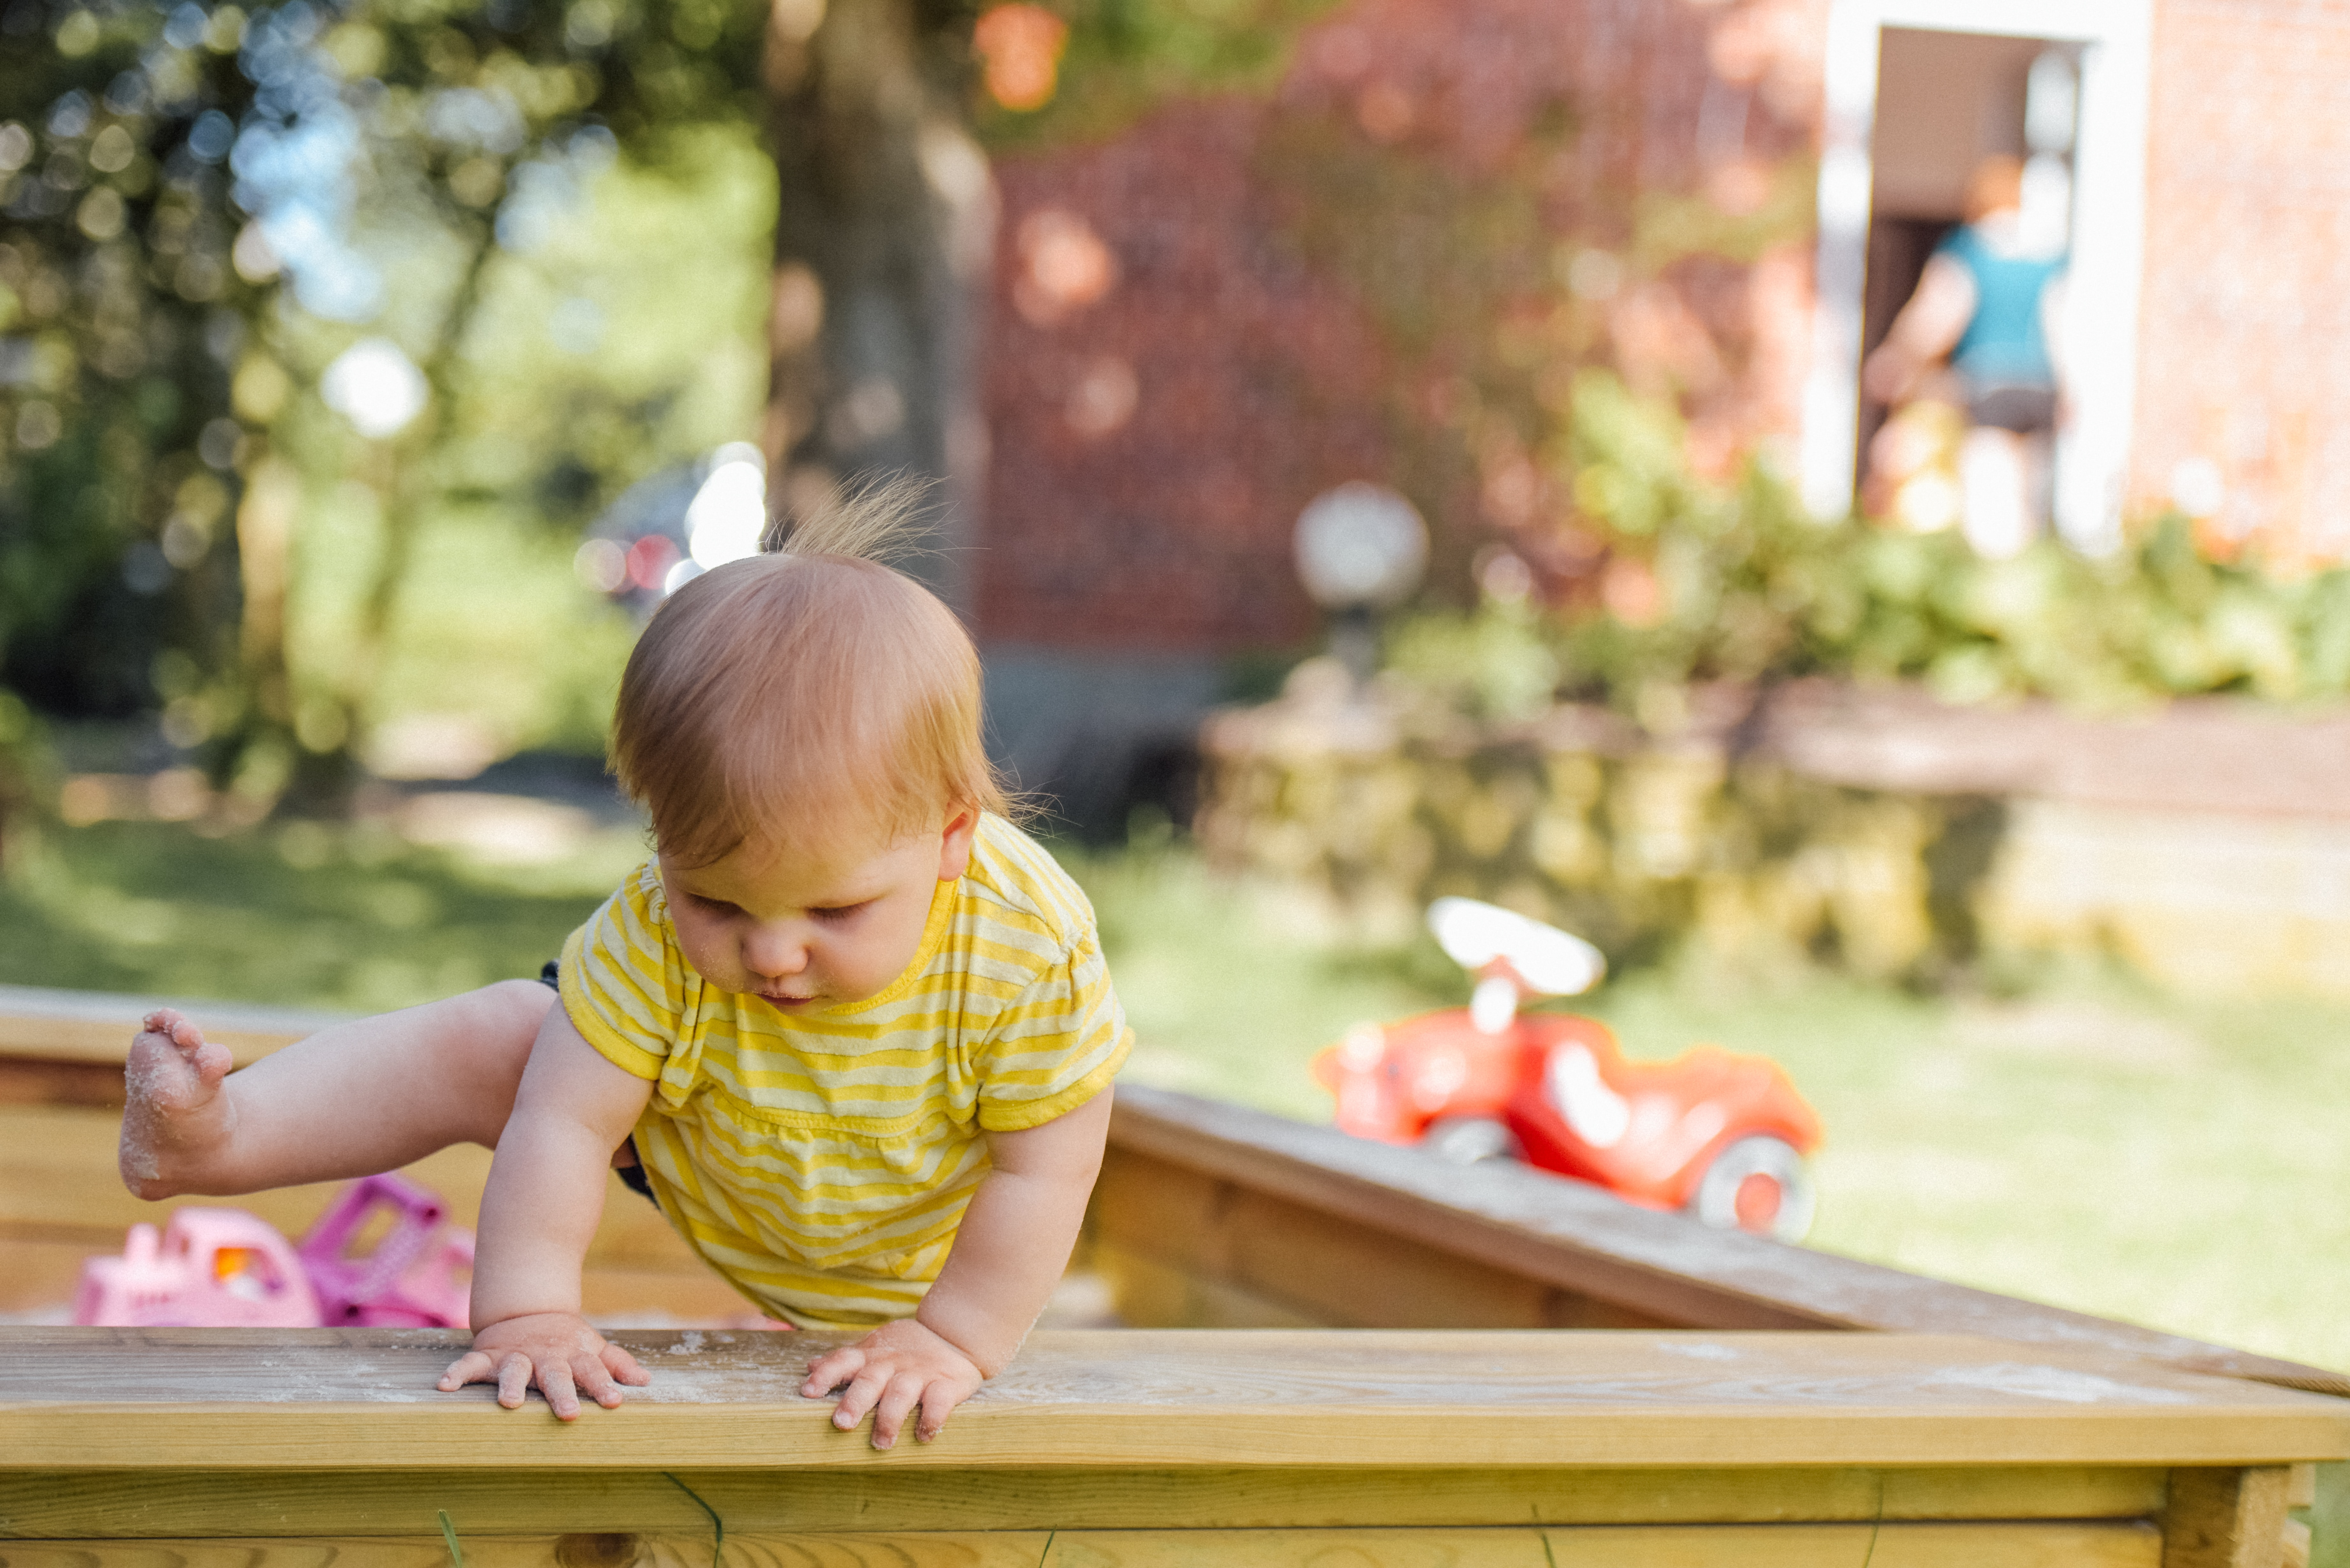 Risky Play Early Childhood Learning